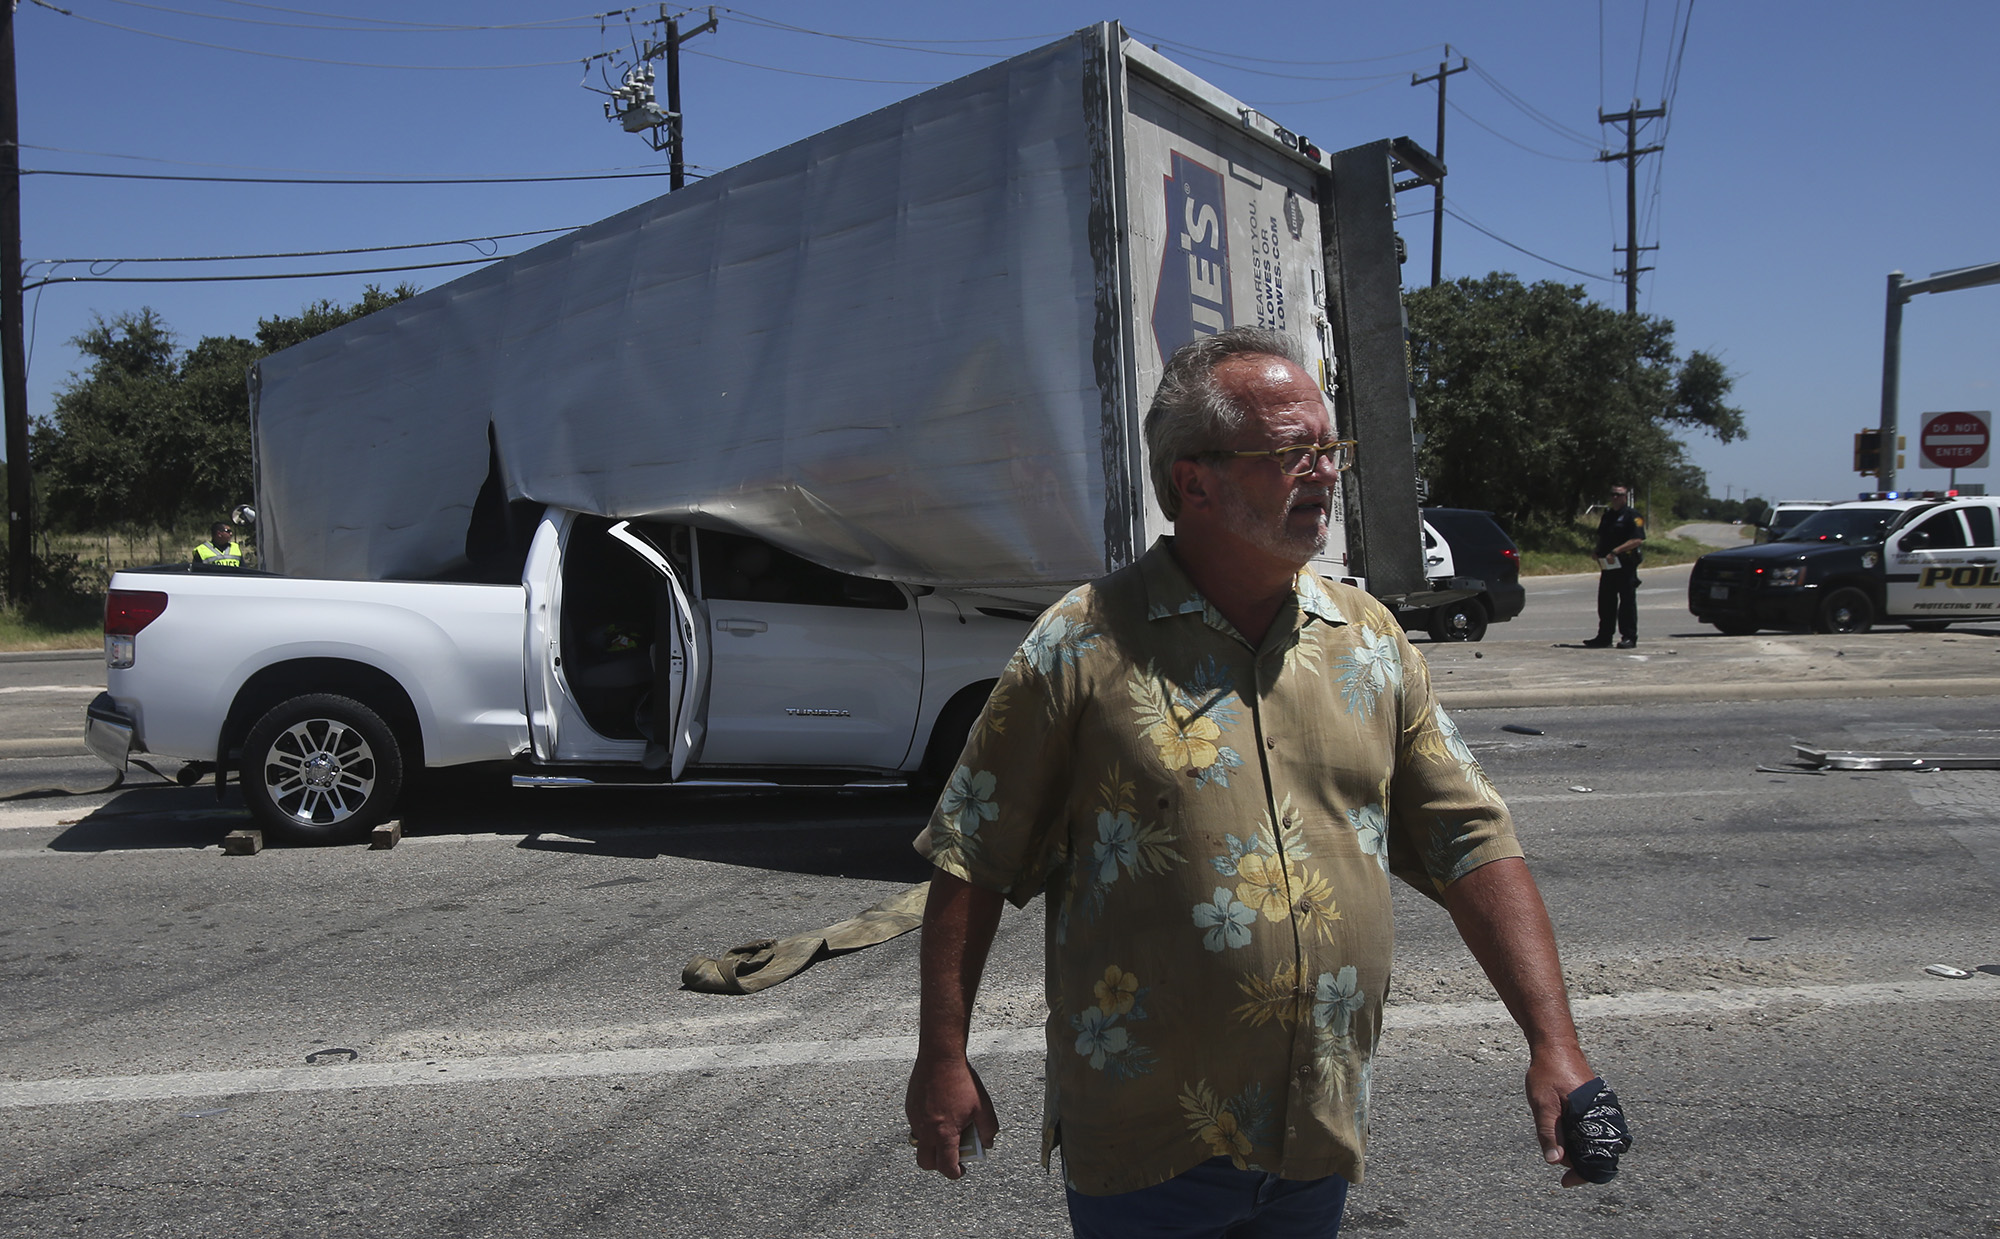 Man Walks Away From Horrific Crash After Lowe S Rig Pancakes His Pickup Truck Near Loop 1604 San Antonio Express News